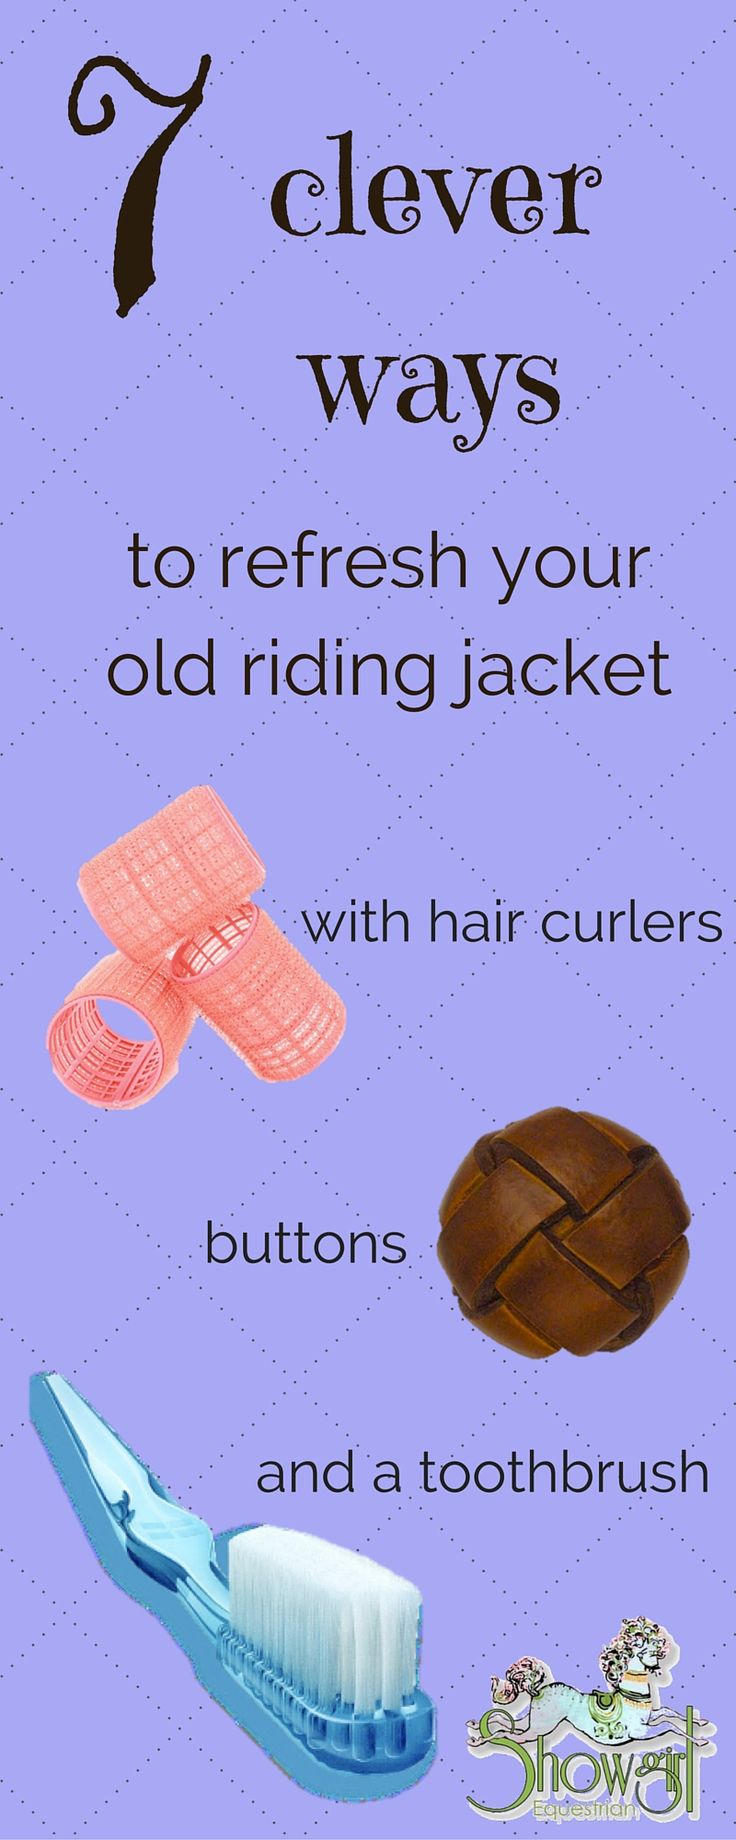 Could your jacket do with some updating? Perhaps you've been out of the scene for a while and want to dip your toe back into the show ring scene without committing to a whole new outfit?  Our fashion guru, Beth has put together a list of handy ideas on how to give your old riding jacket back that sparkle, without breaking the bank!